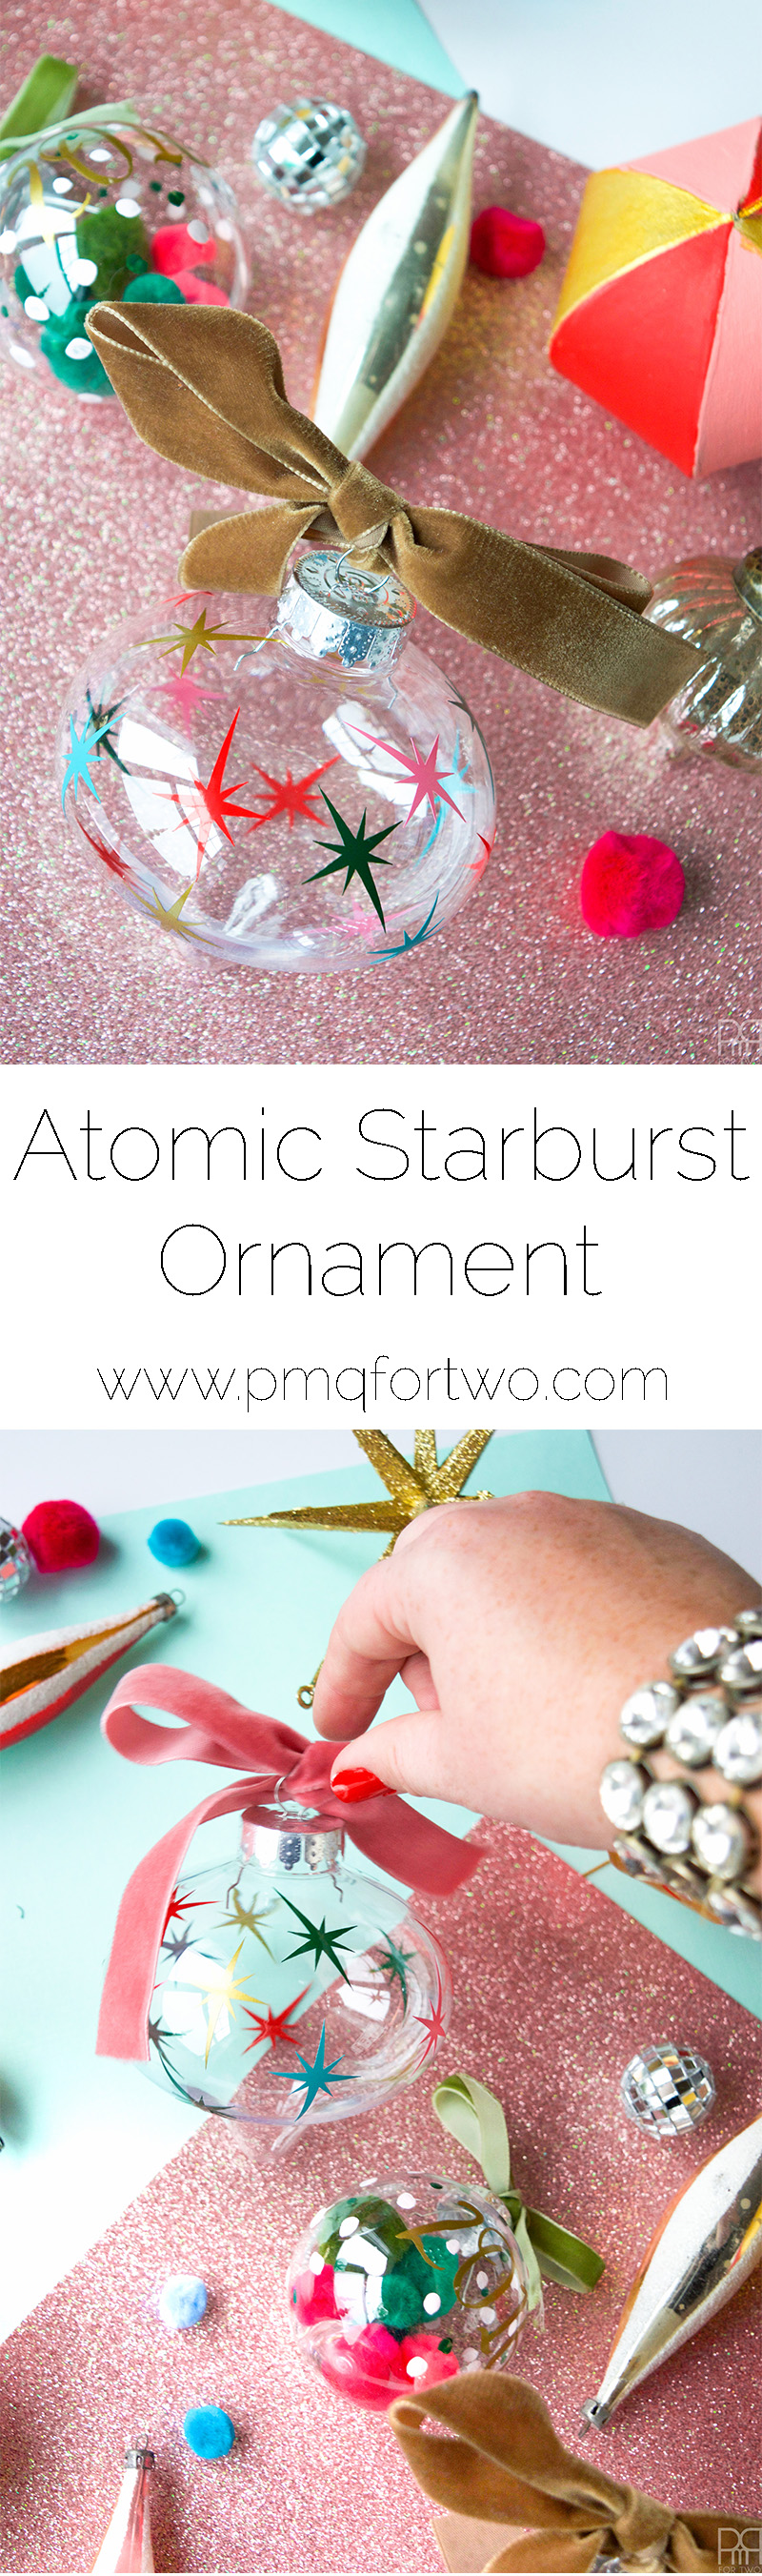 atomic-starburst-ornament